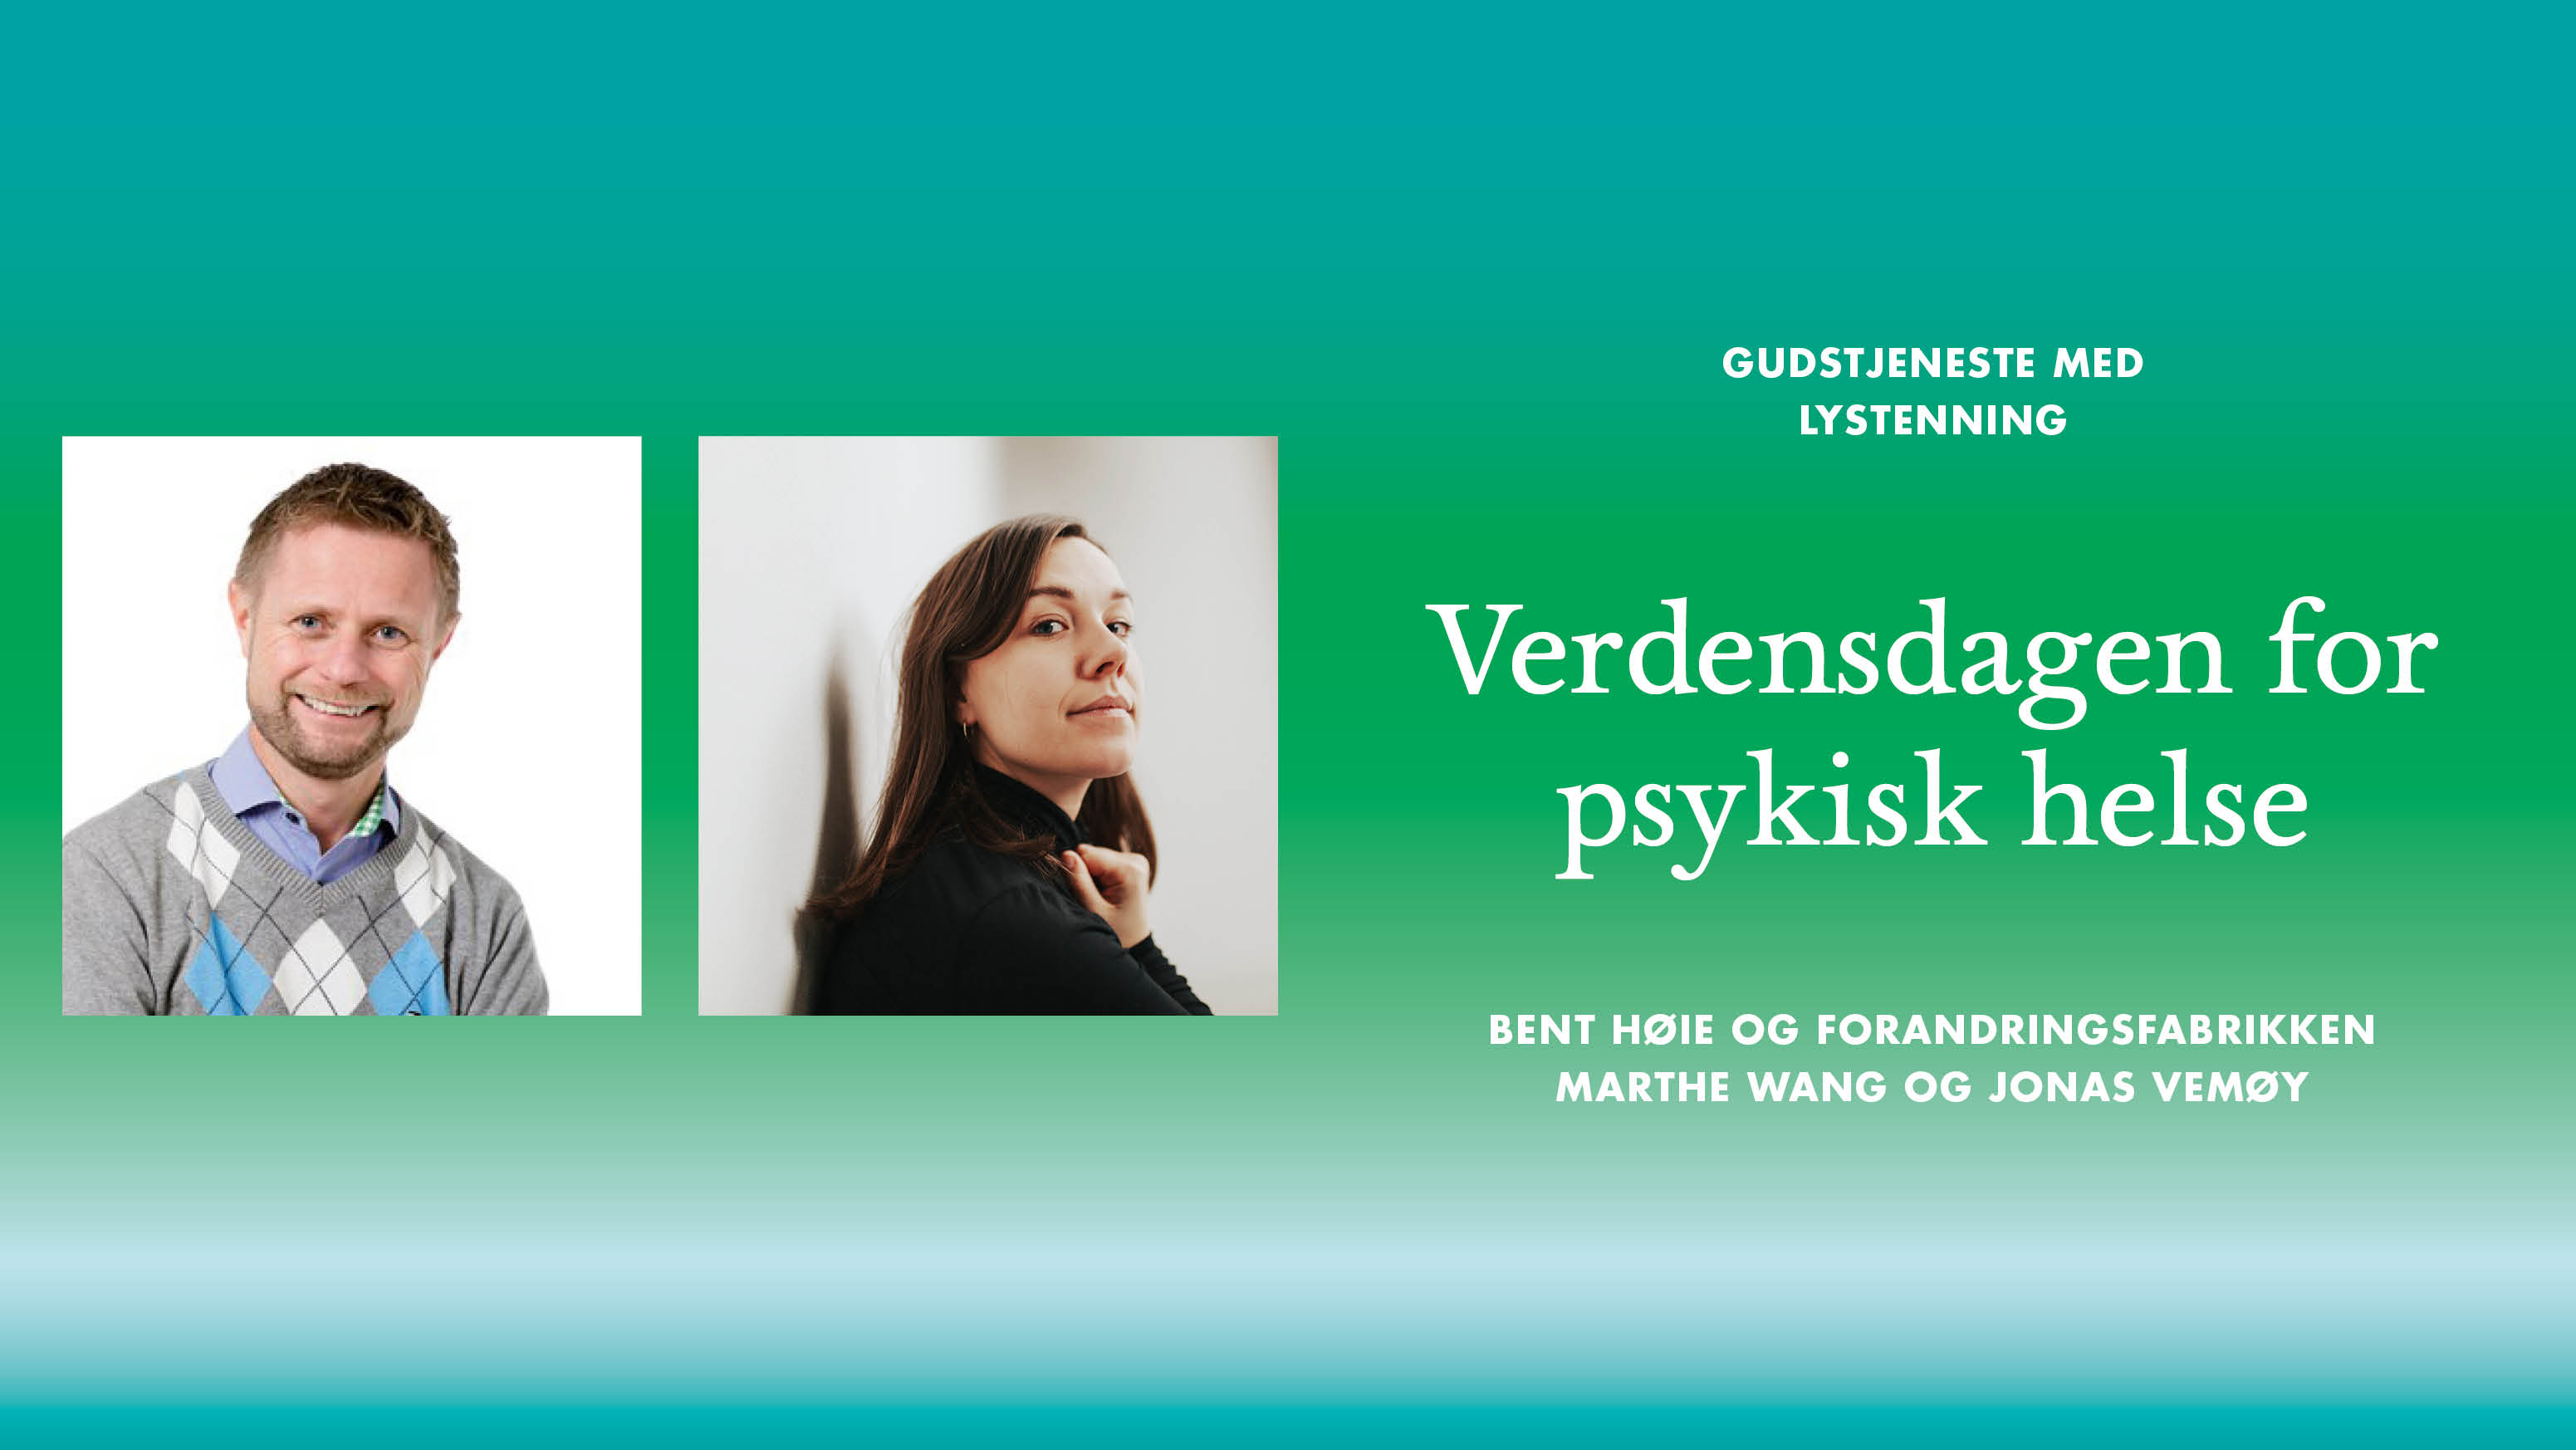 2019-10-10_verdensdagen for psykisk helse.jpg